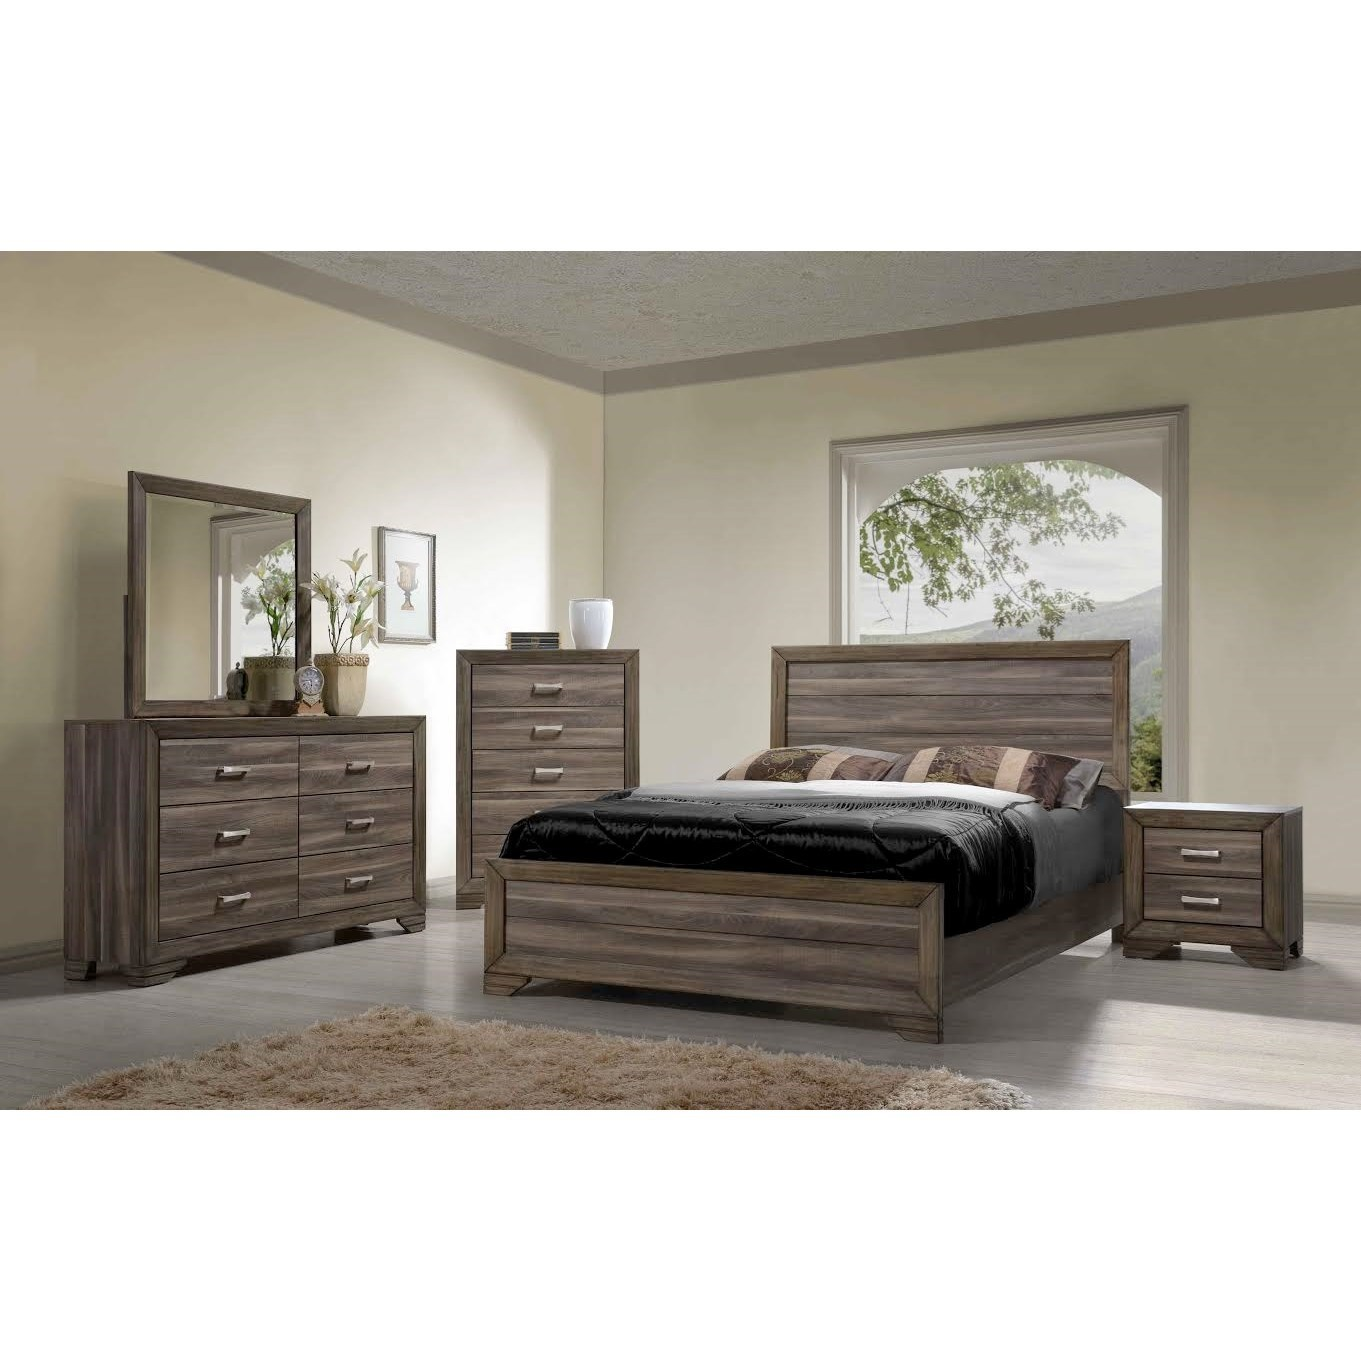 Bernards Asheville Queen Bedroom Group